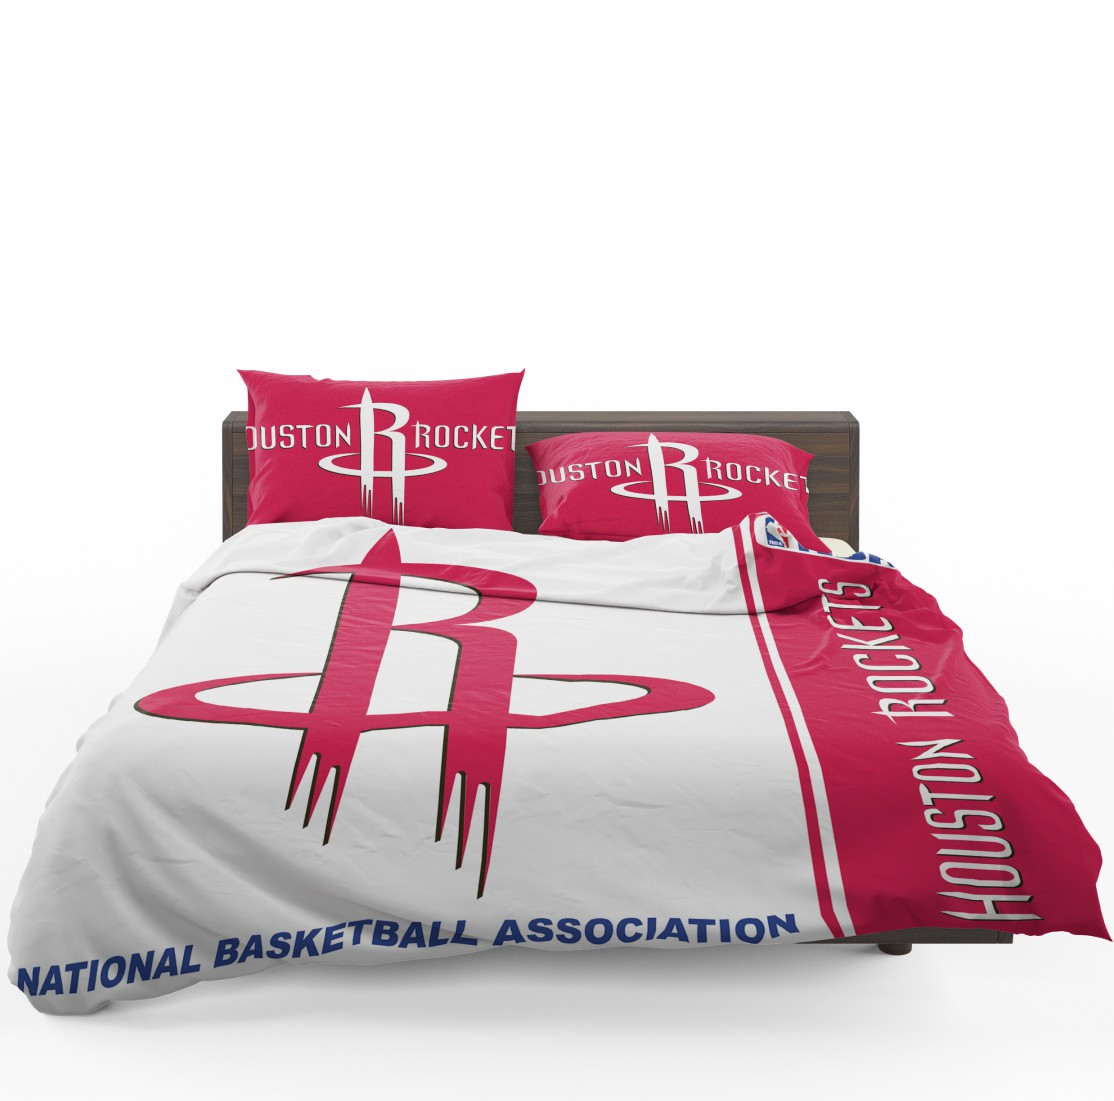 Houston Rockets Nba Basketball Bedding Set 1